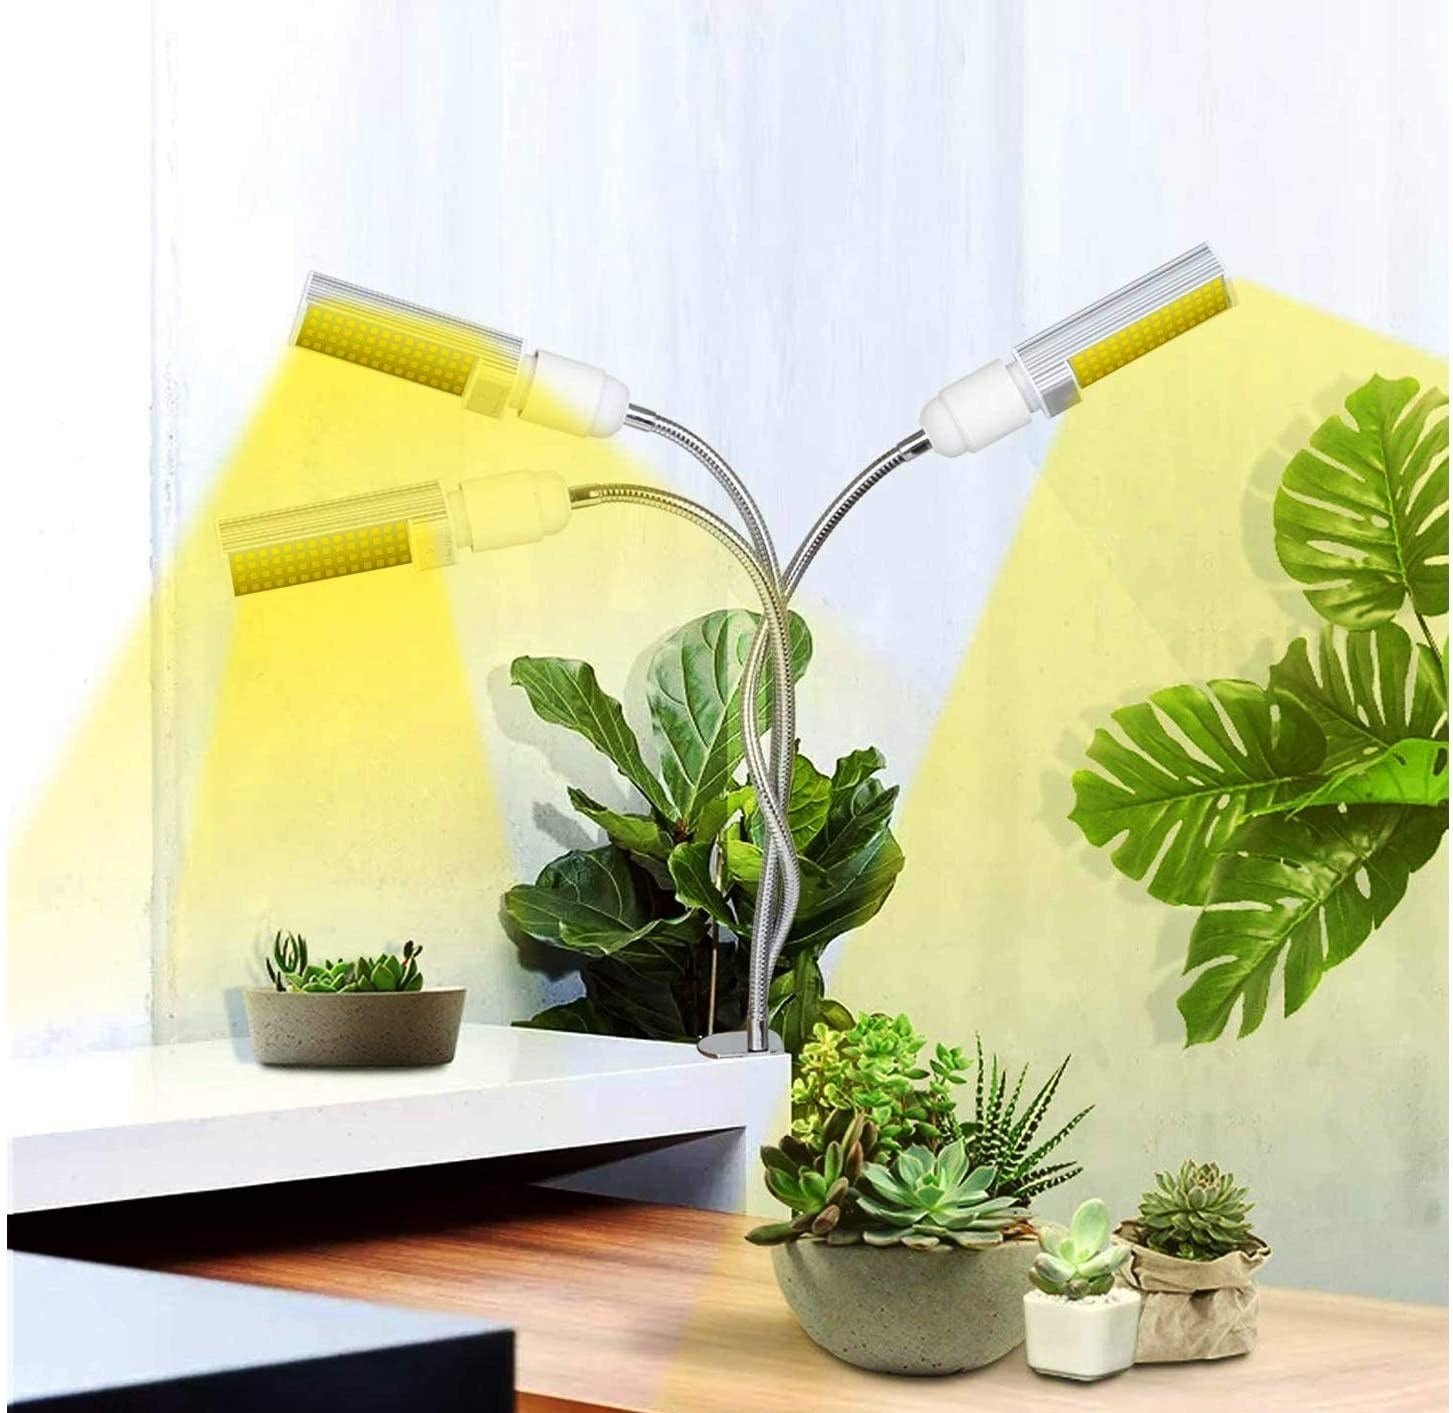 The grow light surrounded by plants